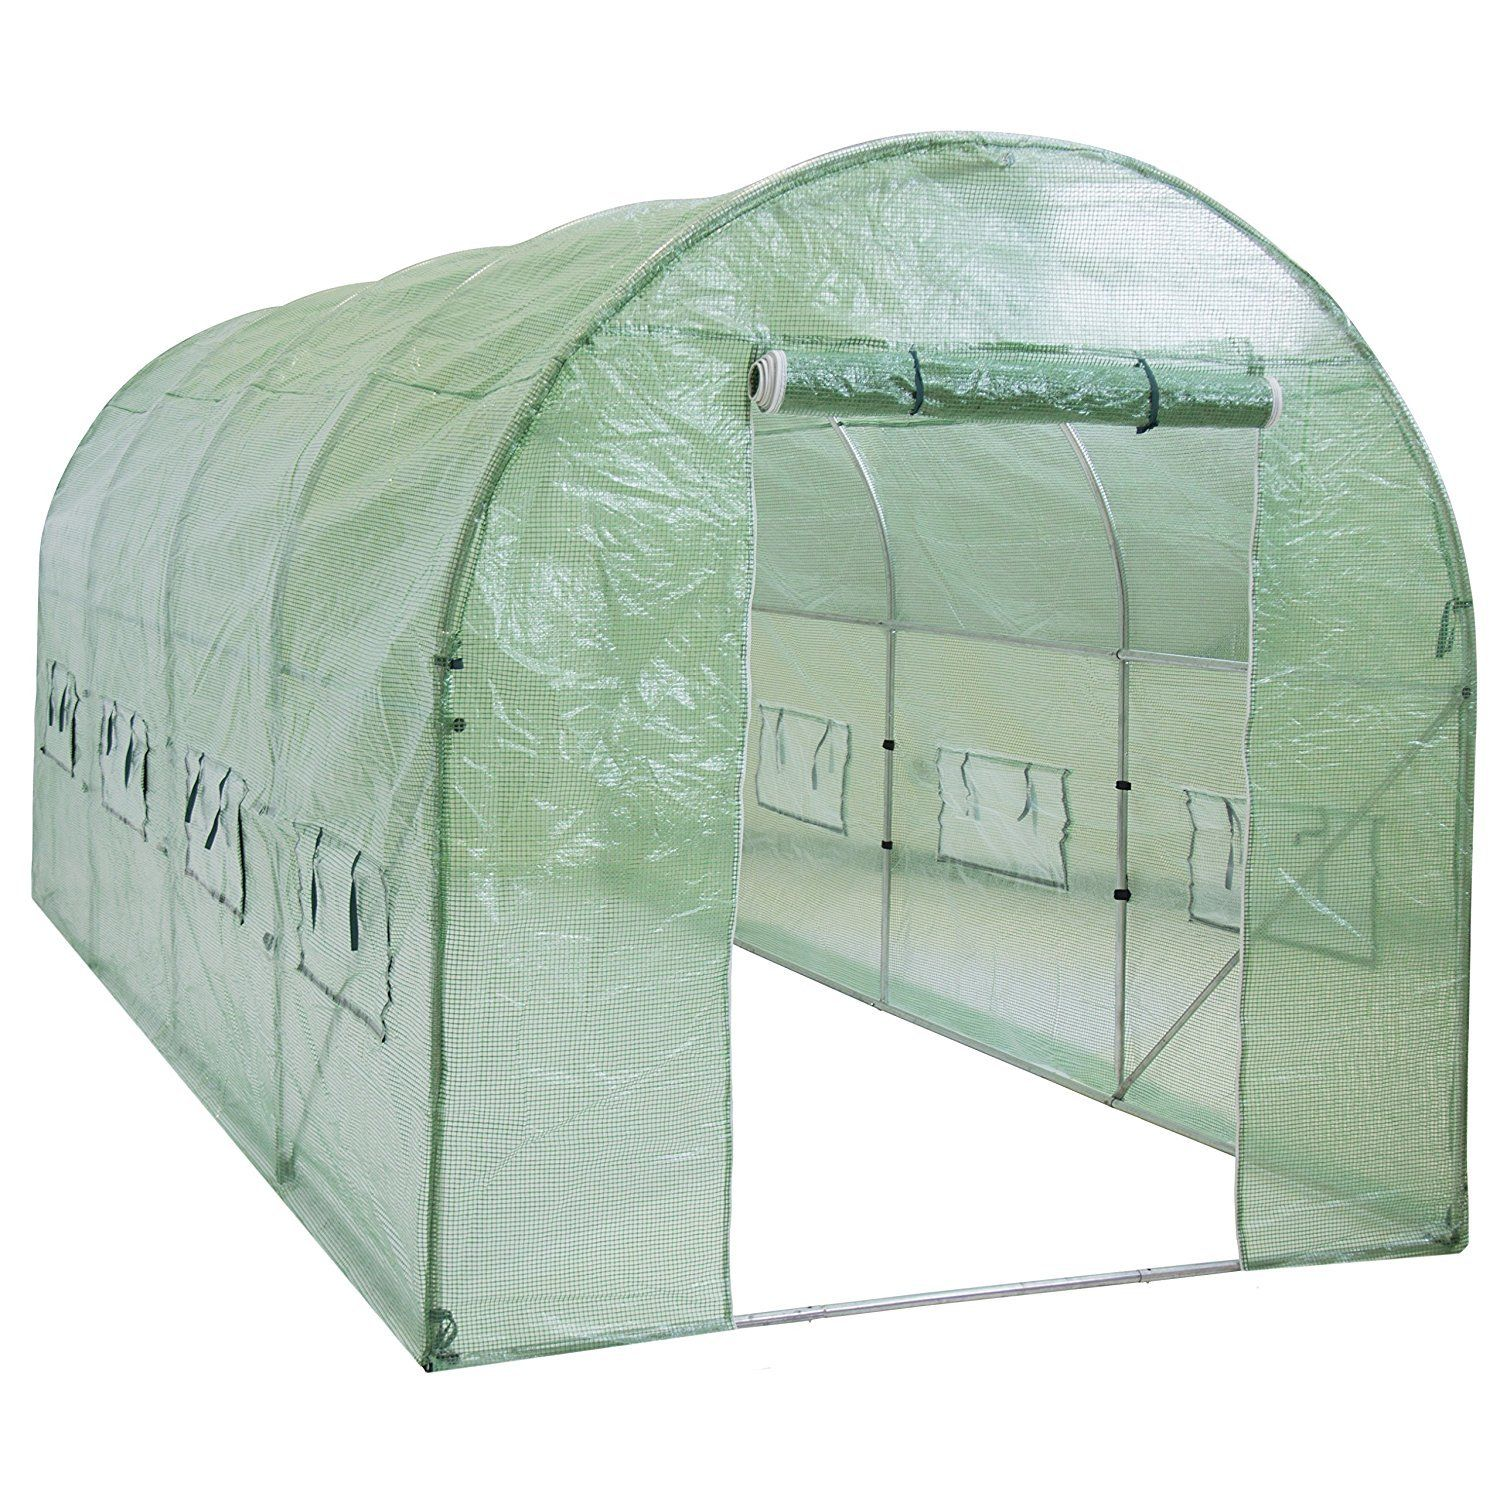 Large polytunnel greenhouse